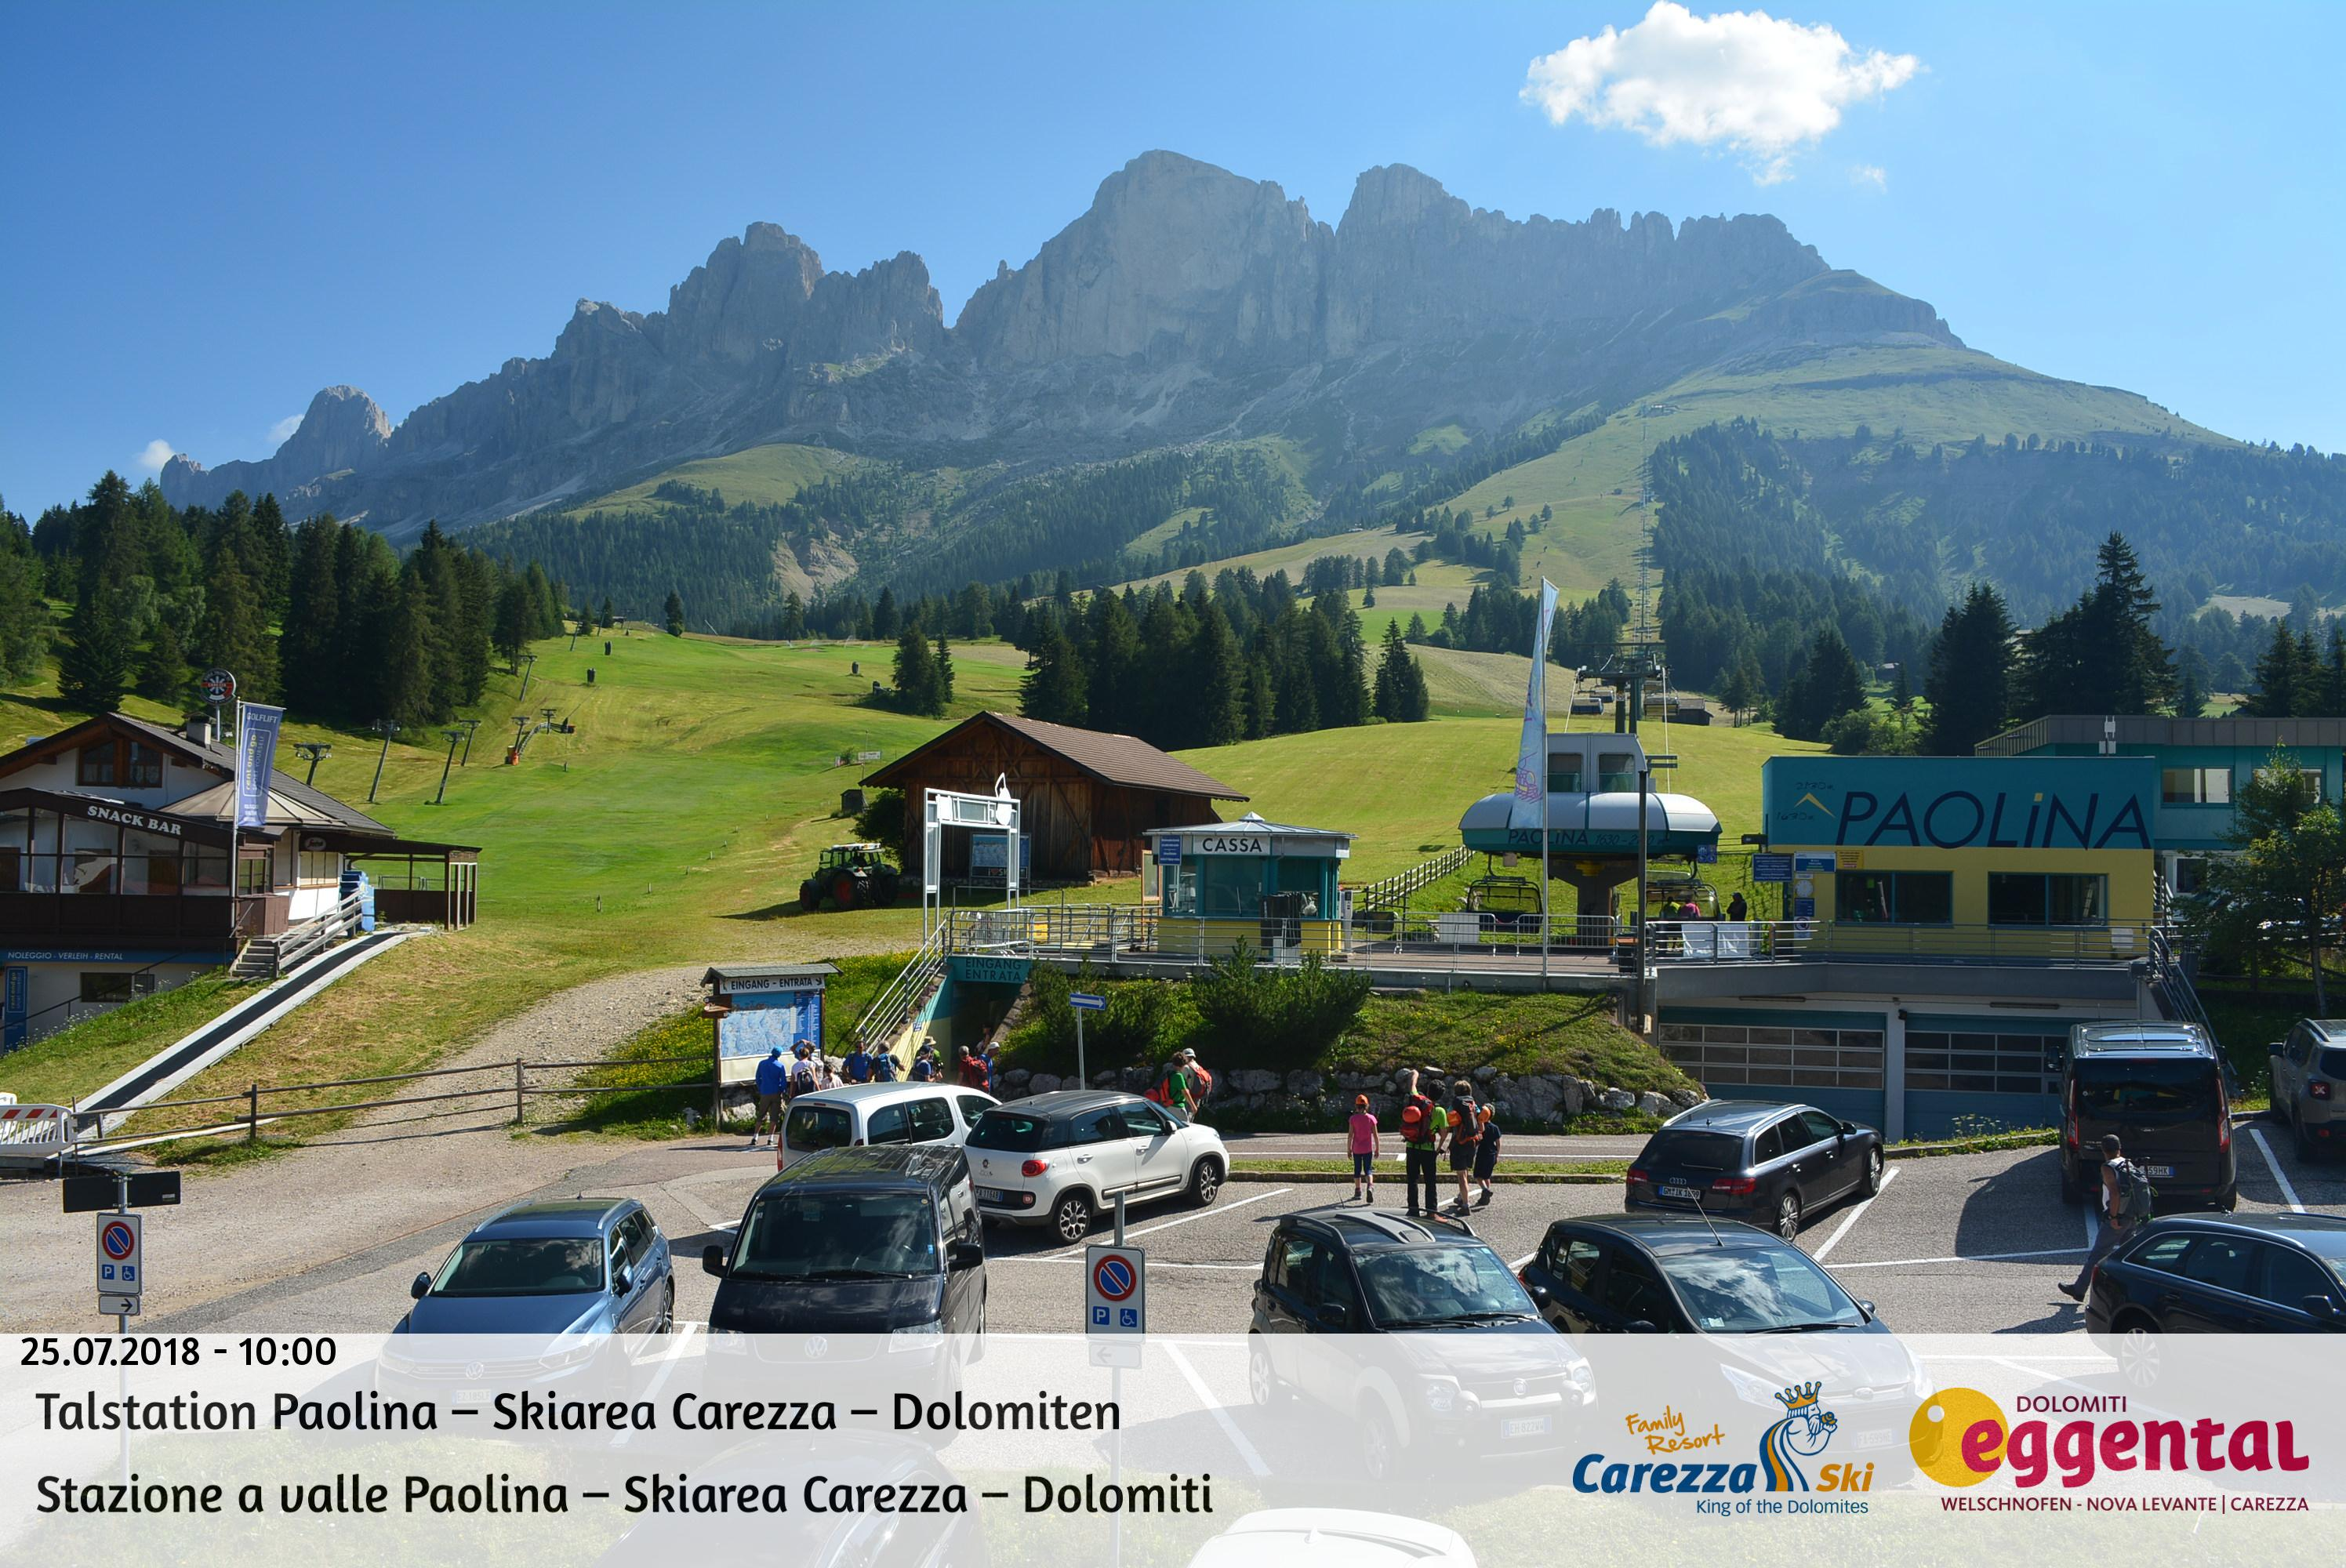 Webcam Carezza - Paolina - Altitude: 1,770 metresArea: chair lift PaolinaPanoramic viewpoint: static webcam. Paolina chair lift departure.